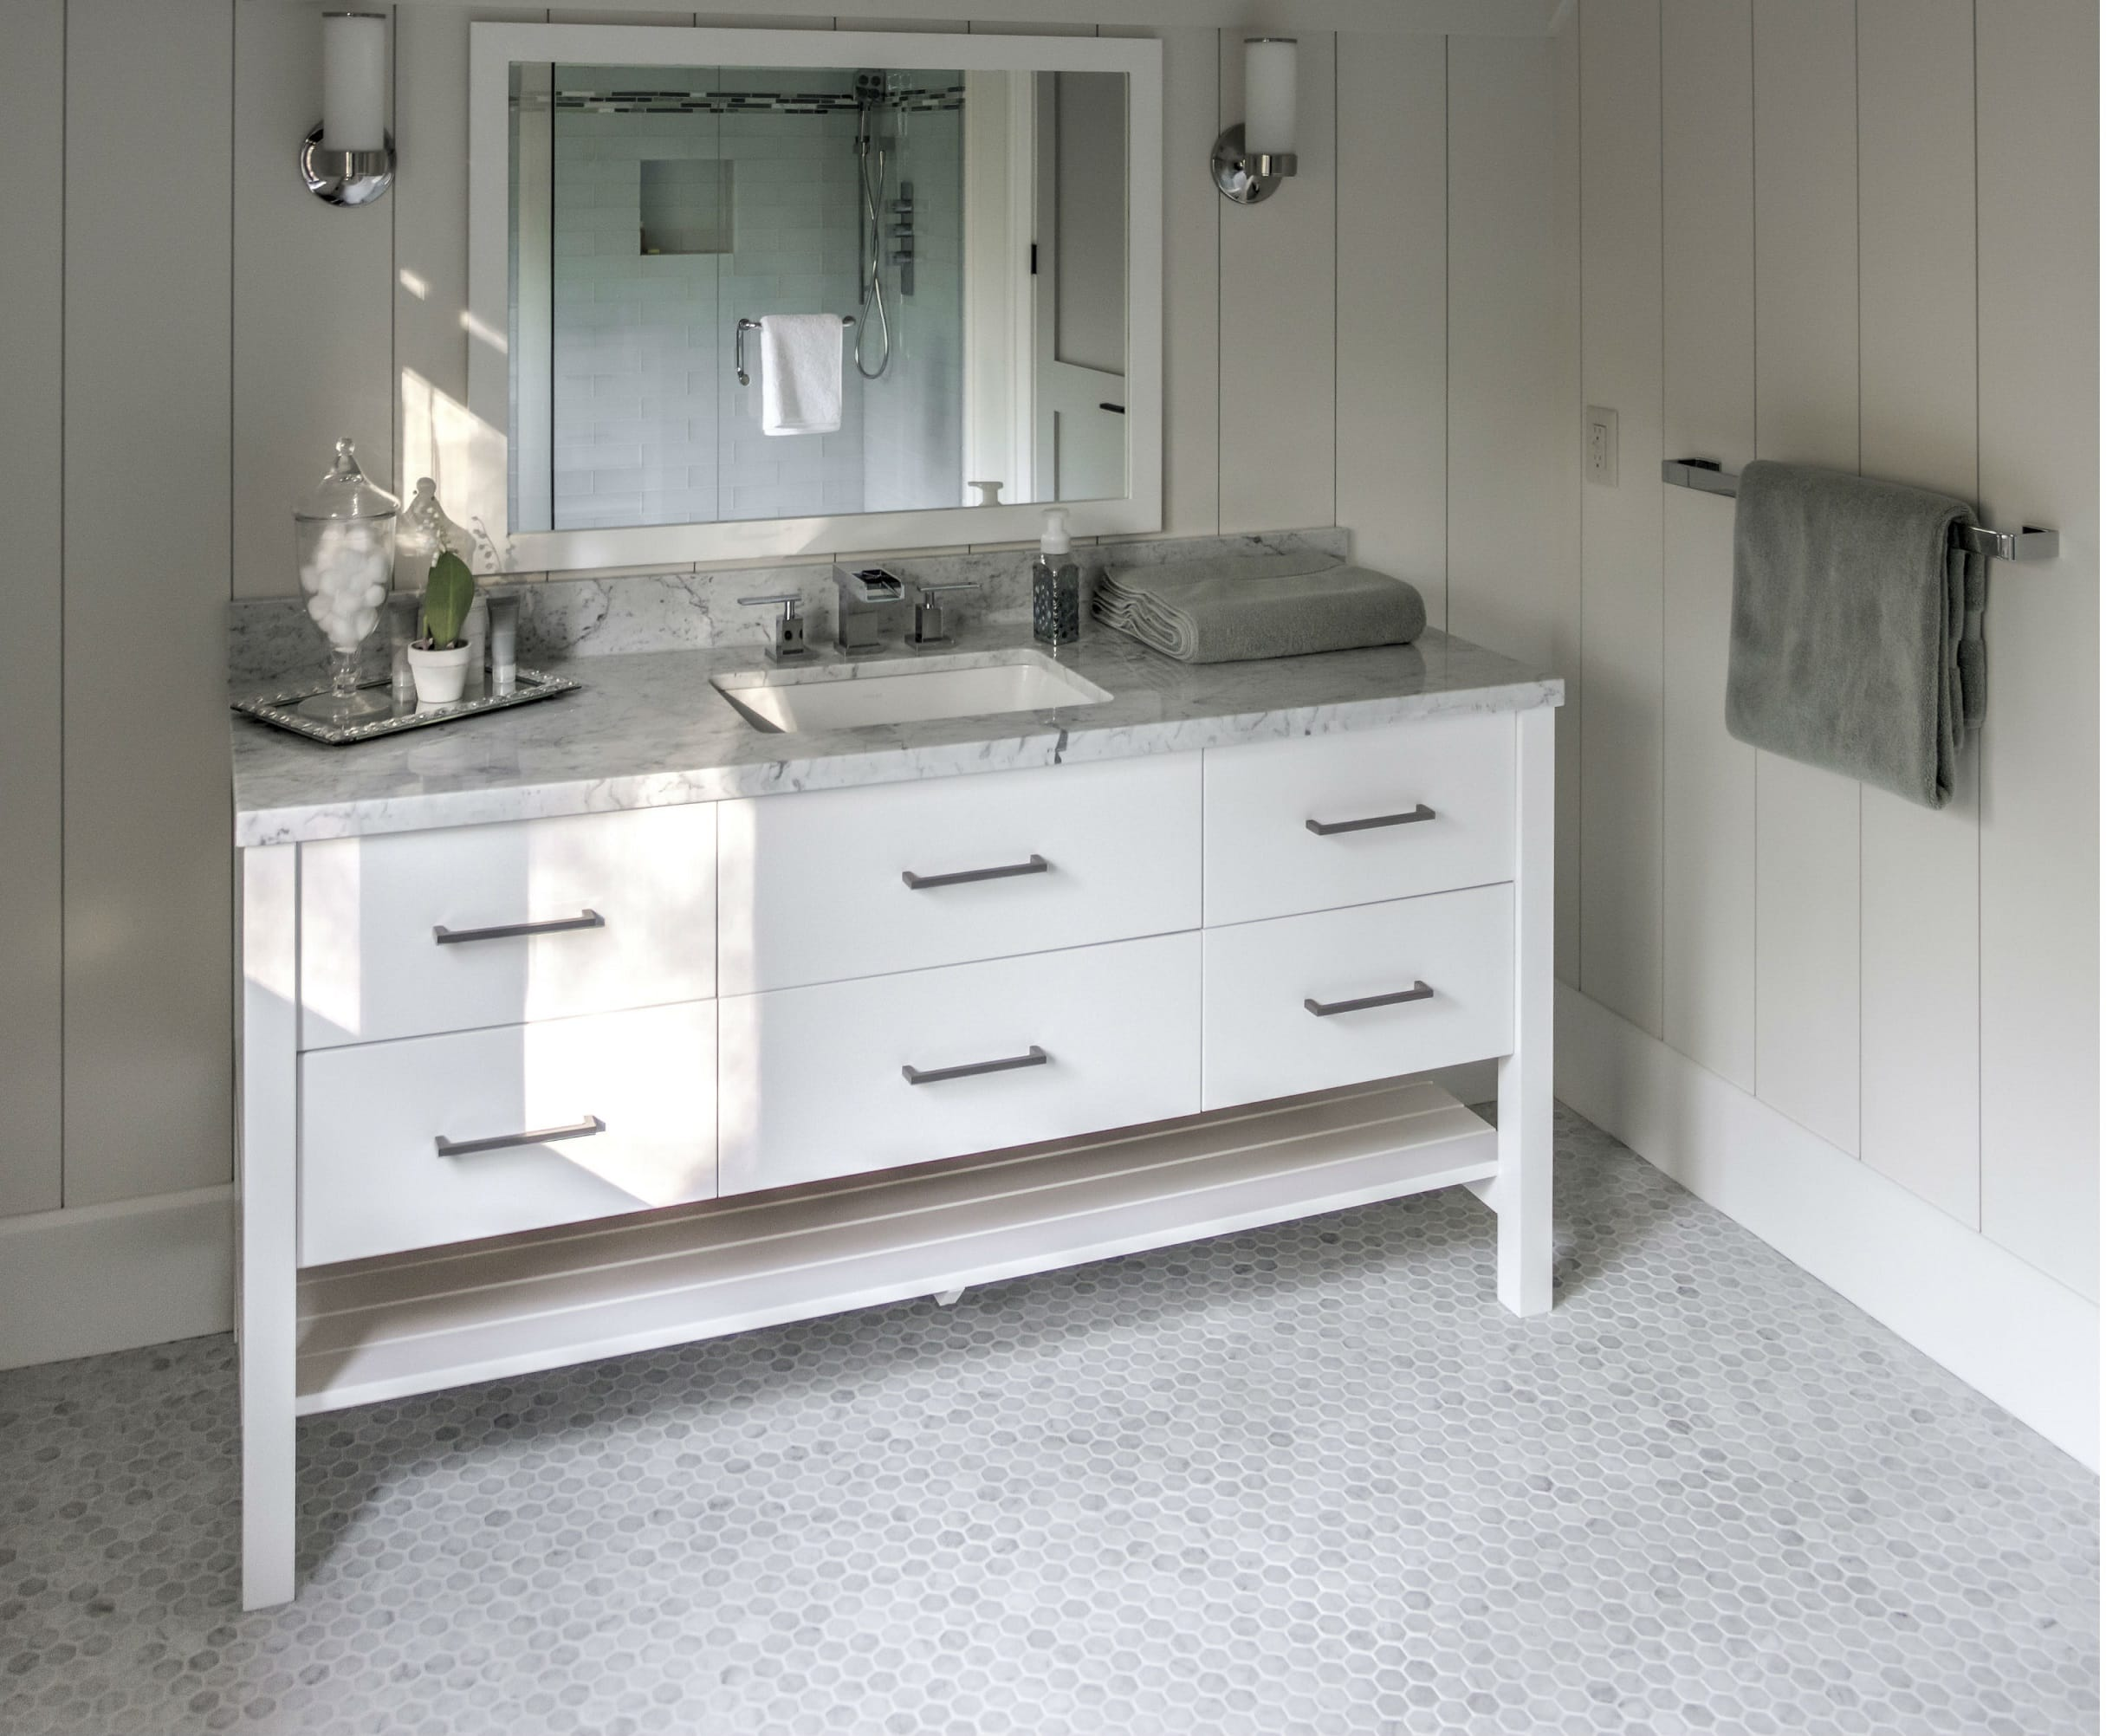 Bathrooms Northern Living Kitchen And Bath Ltd